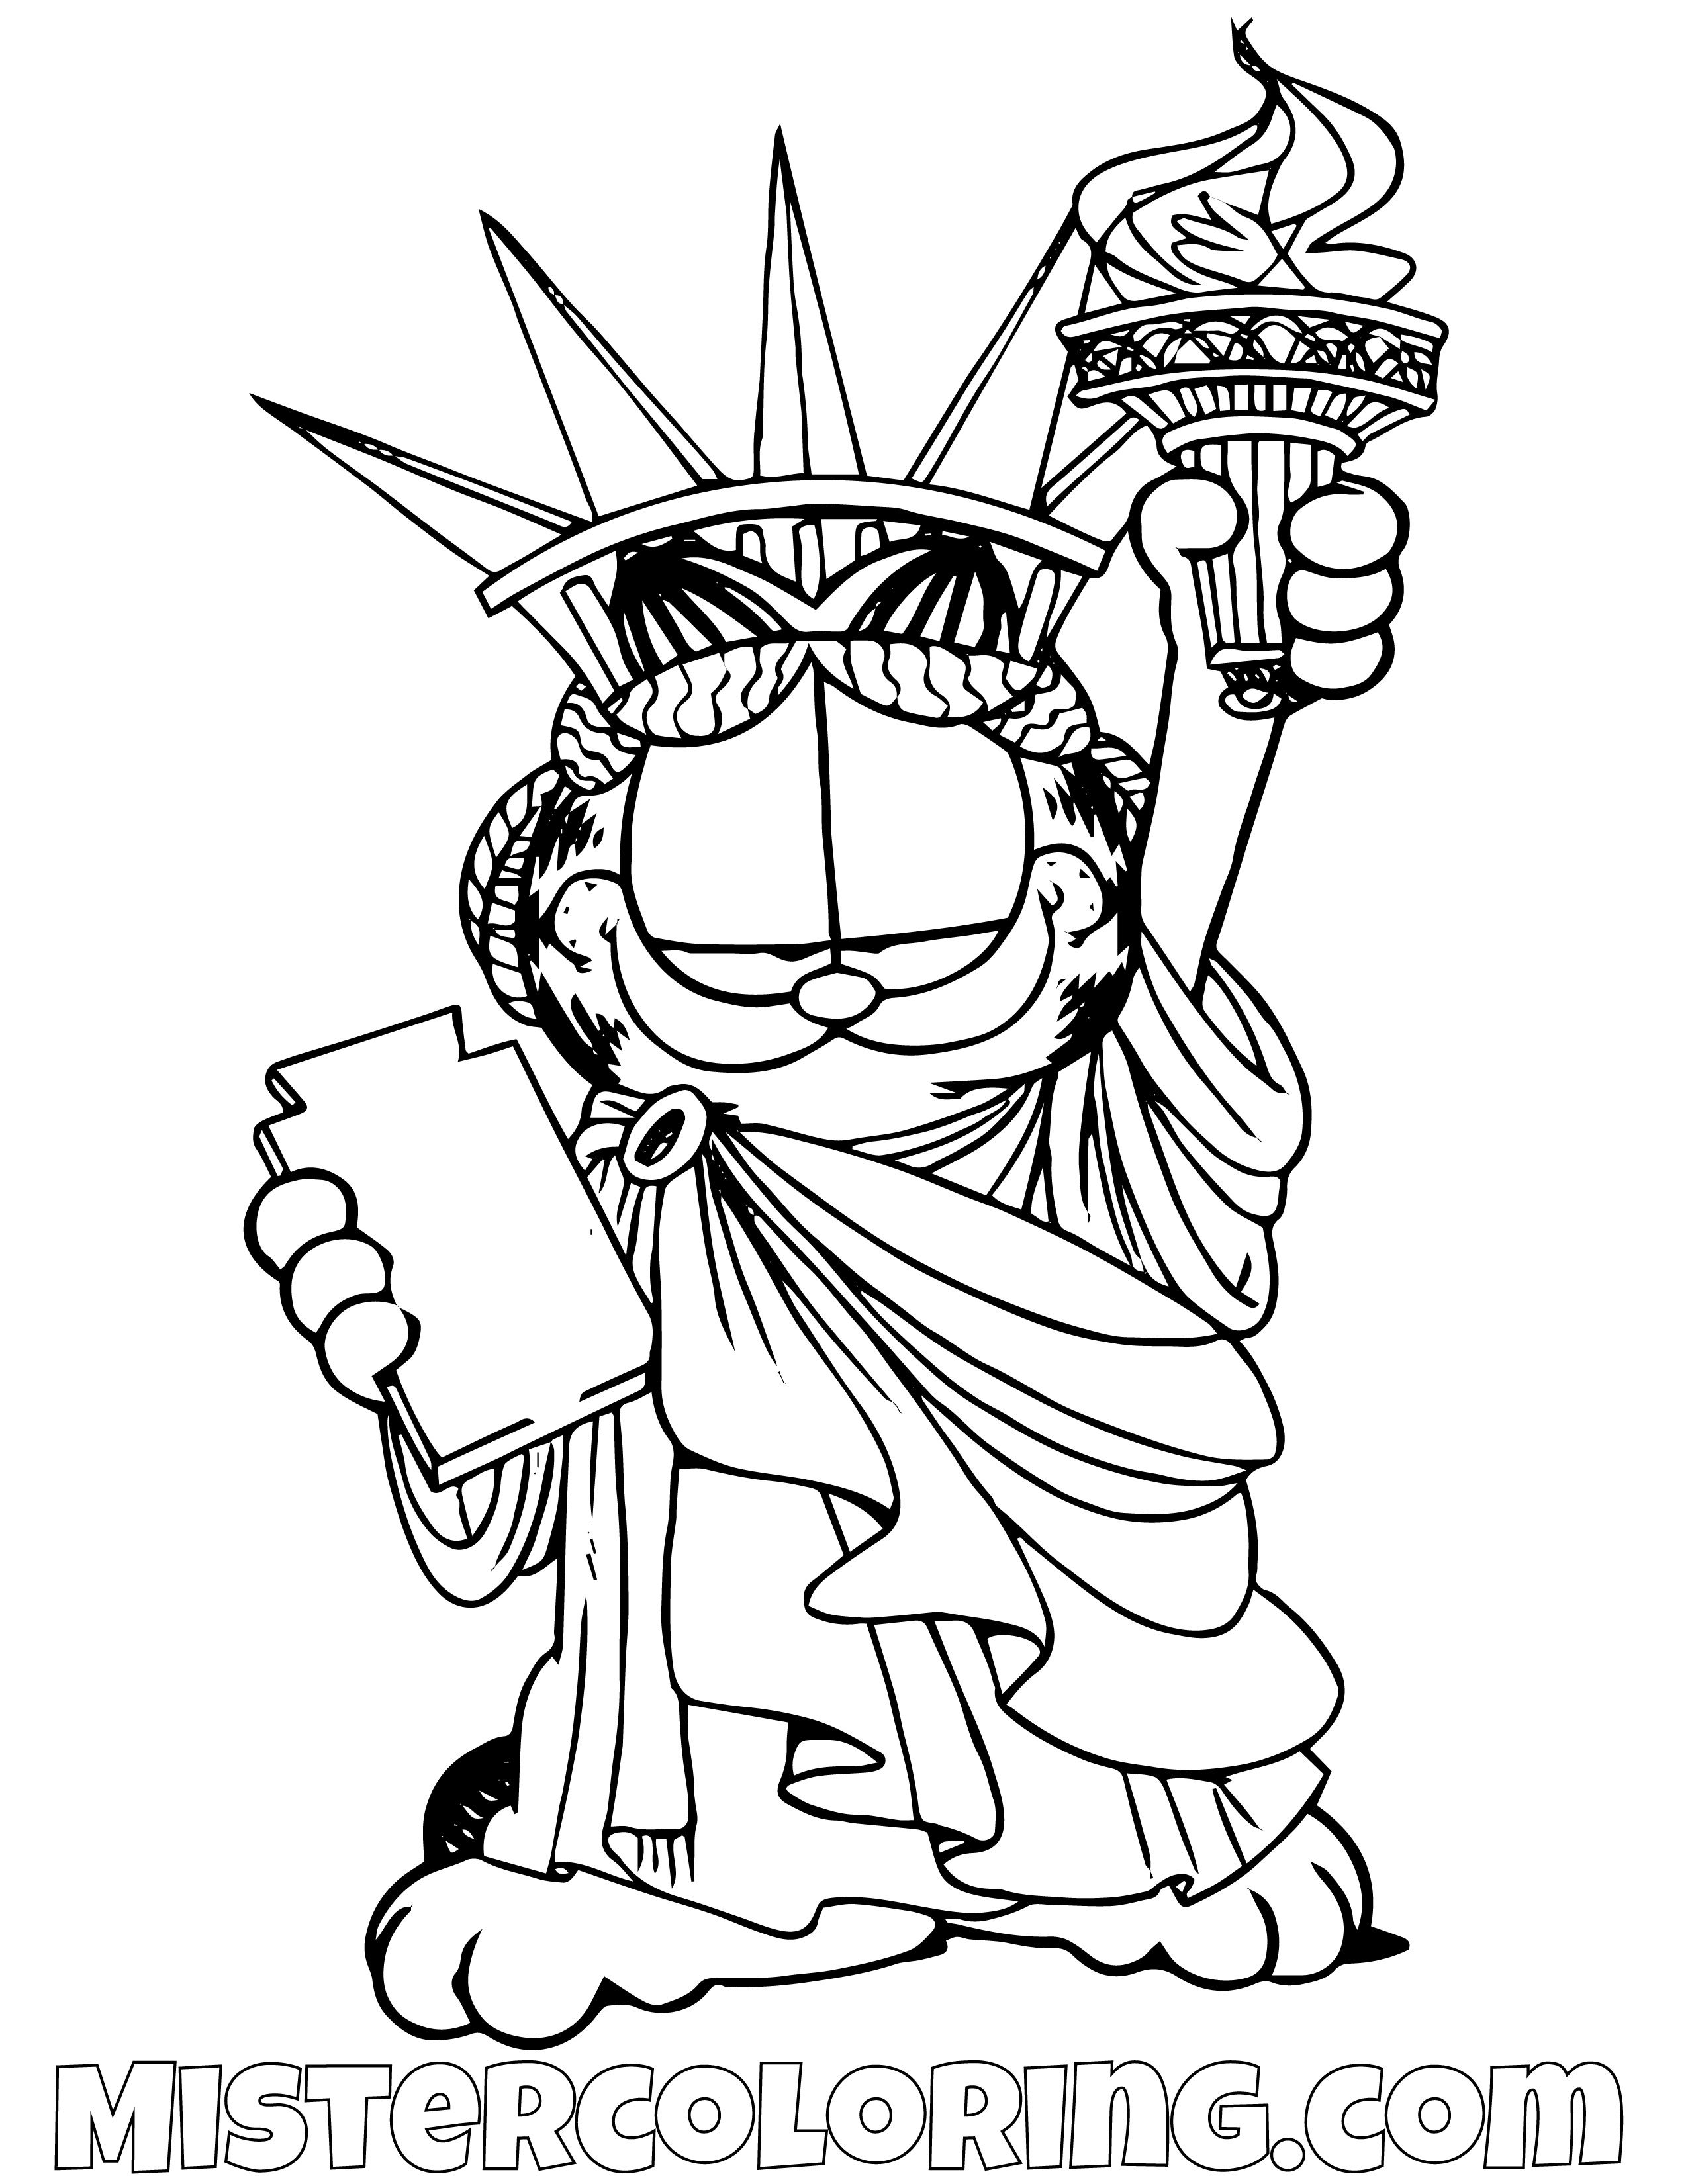 Pin By Mister Coloring On Garfield Coloring Pages For Kids In 2018